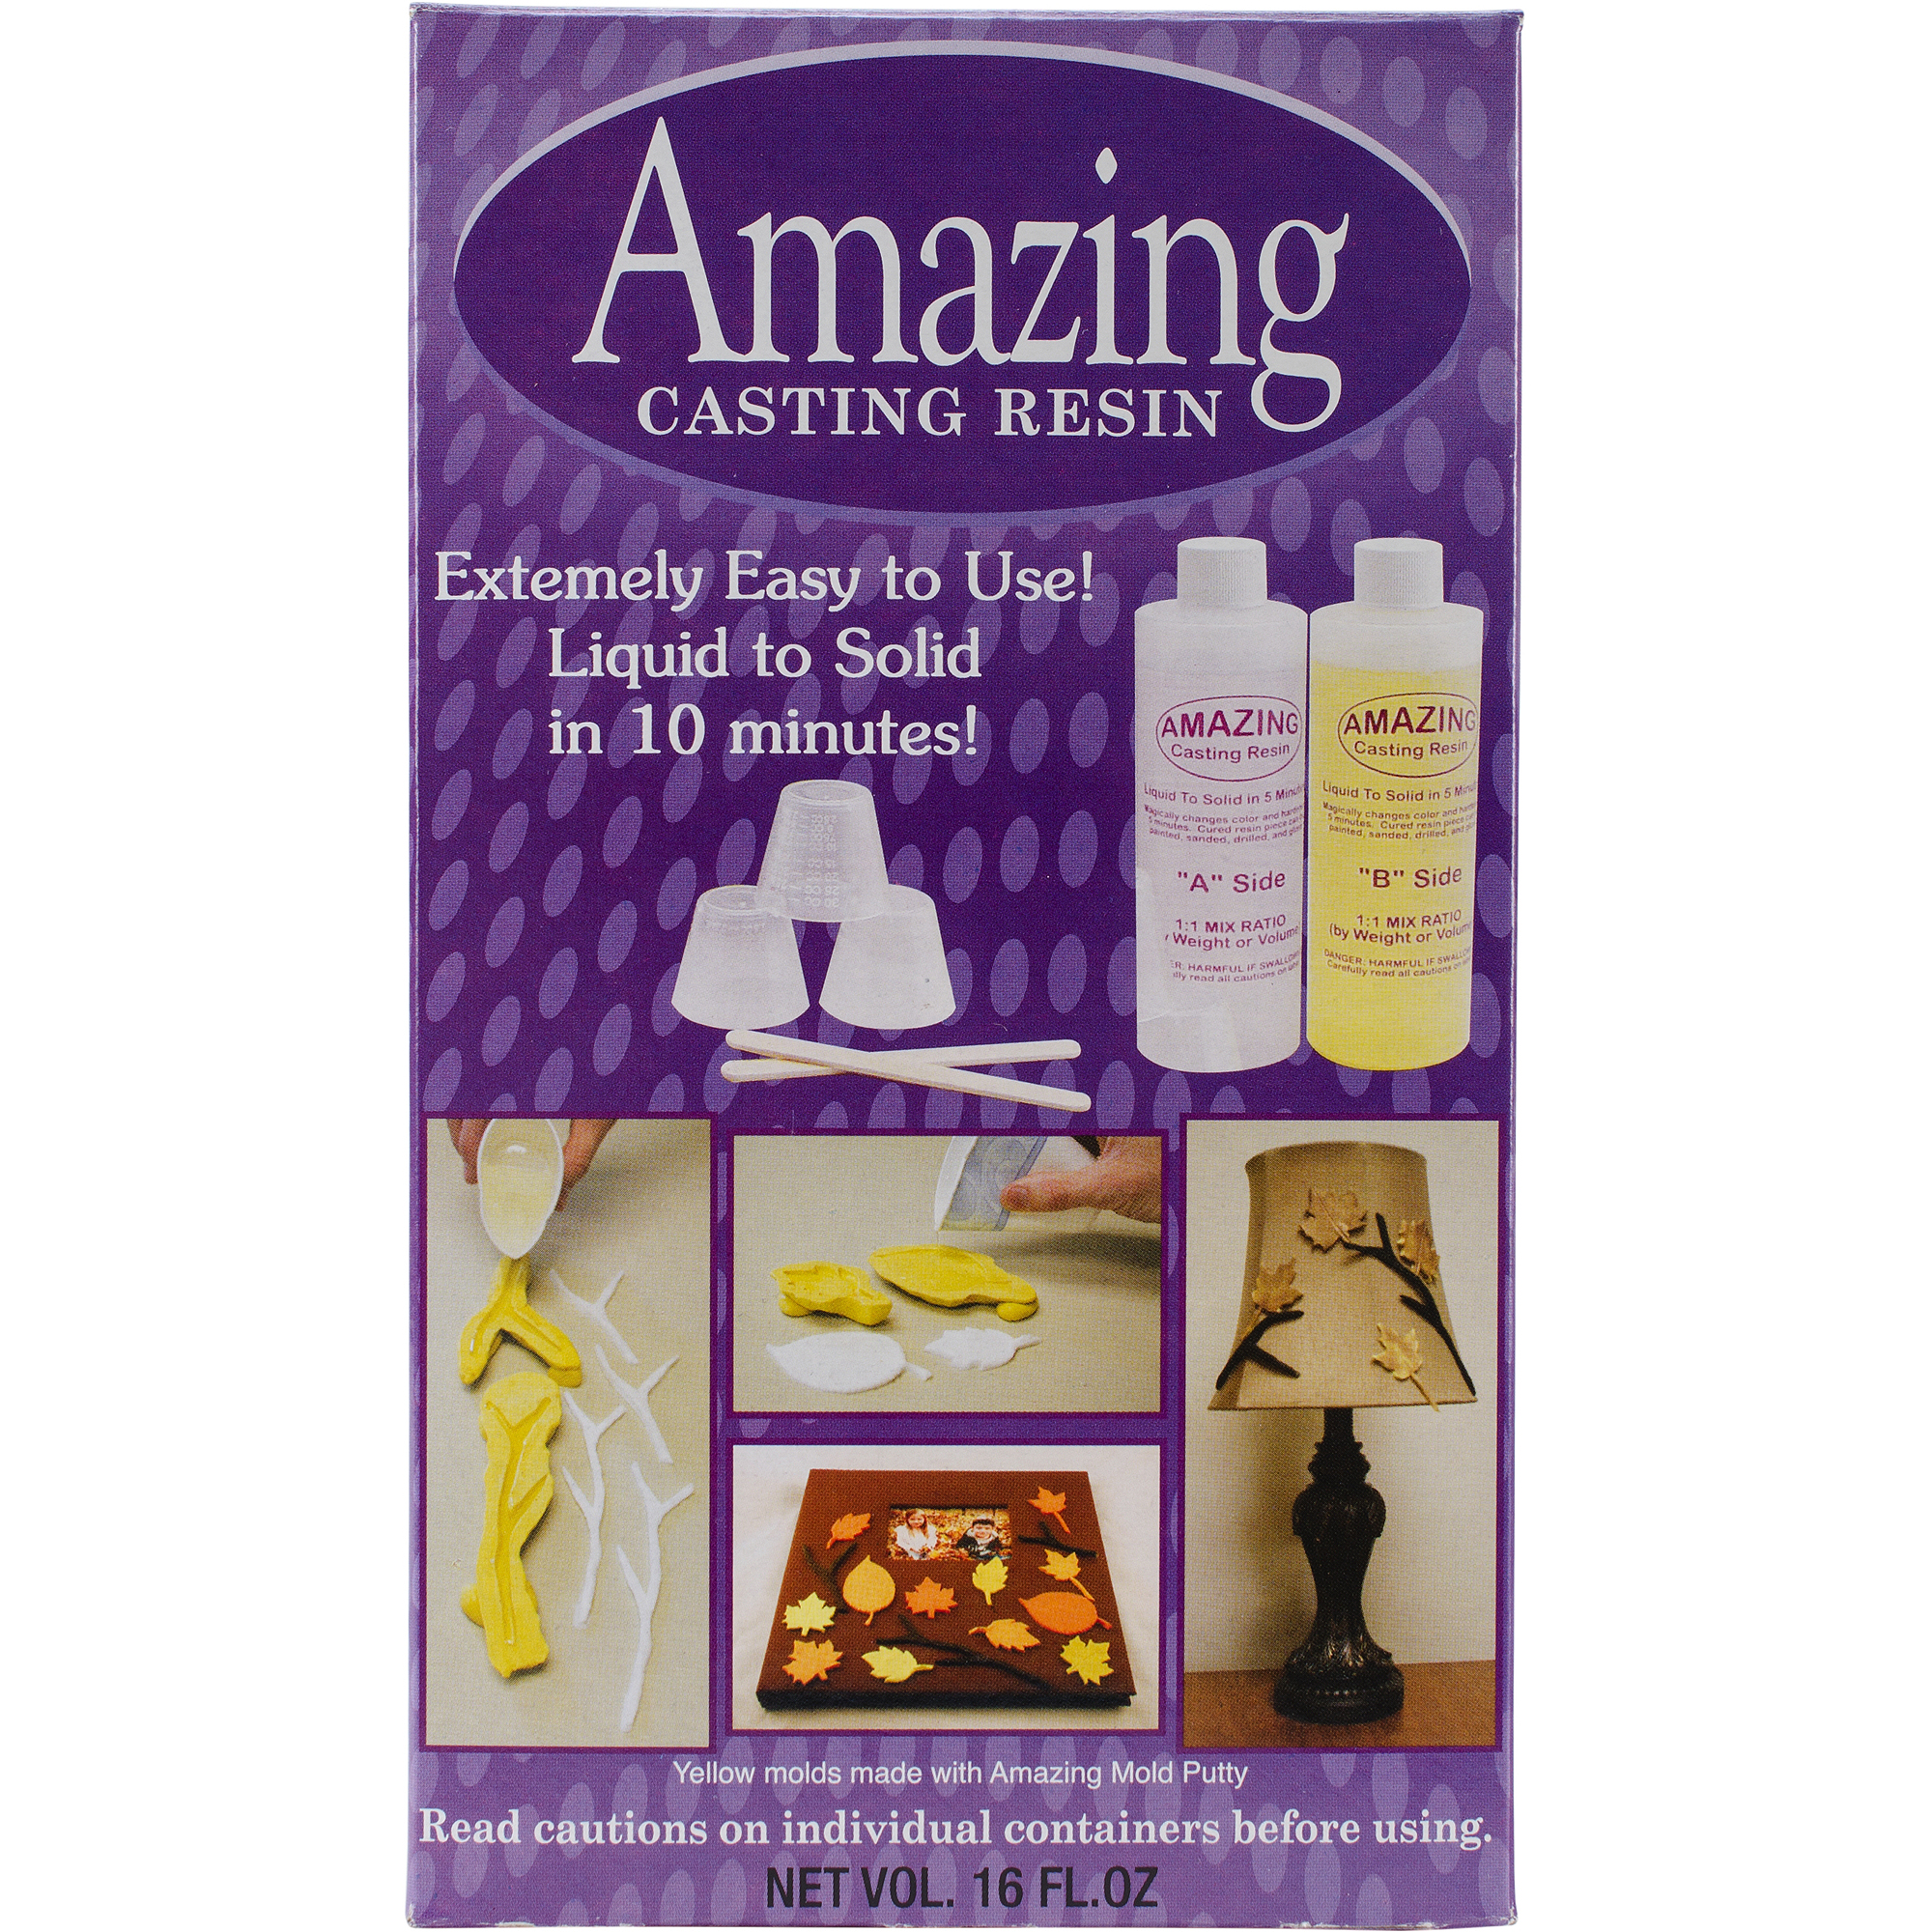 Amazing Casting Resin Kit, 16 oz